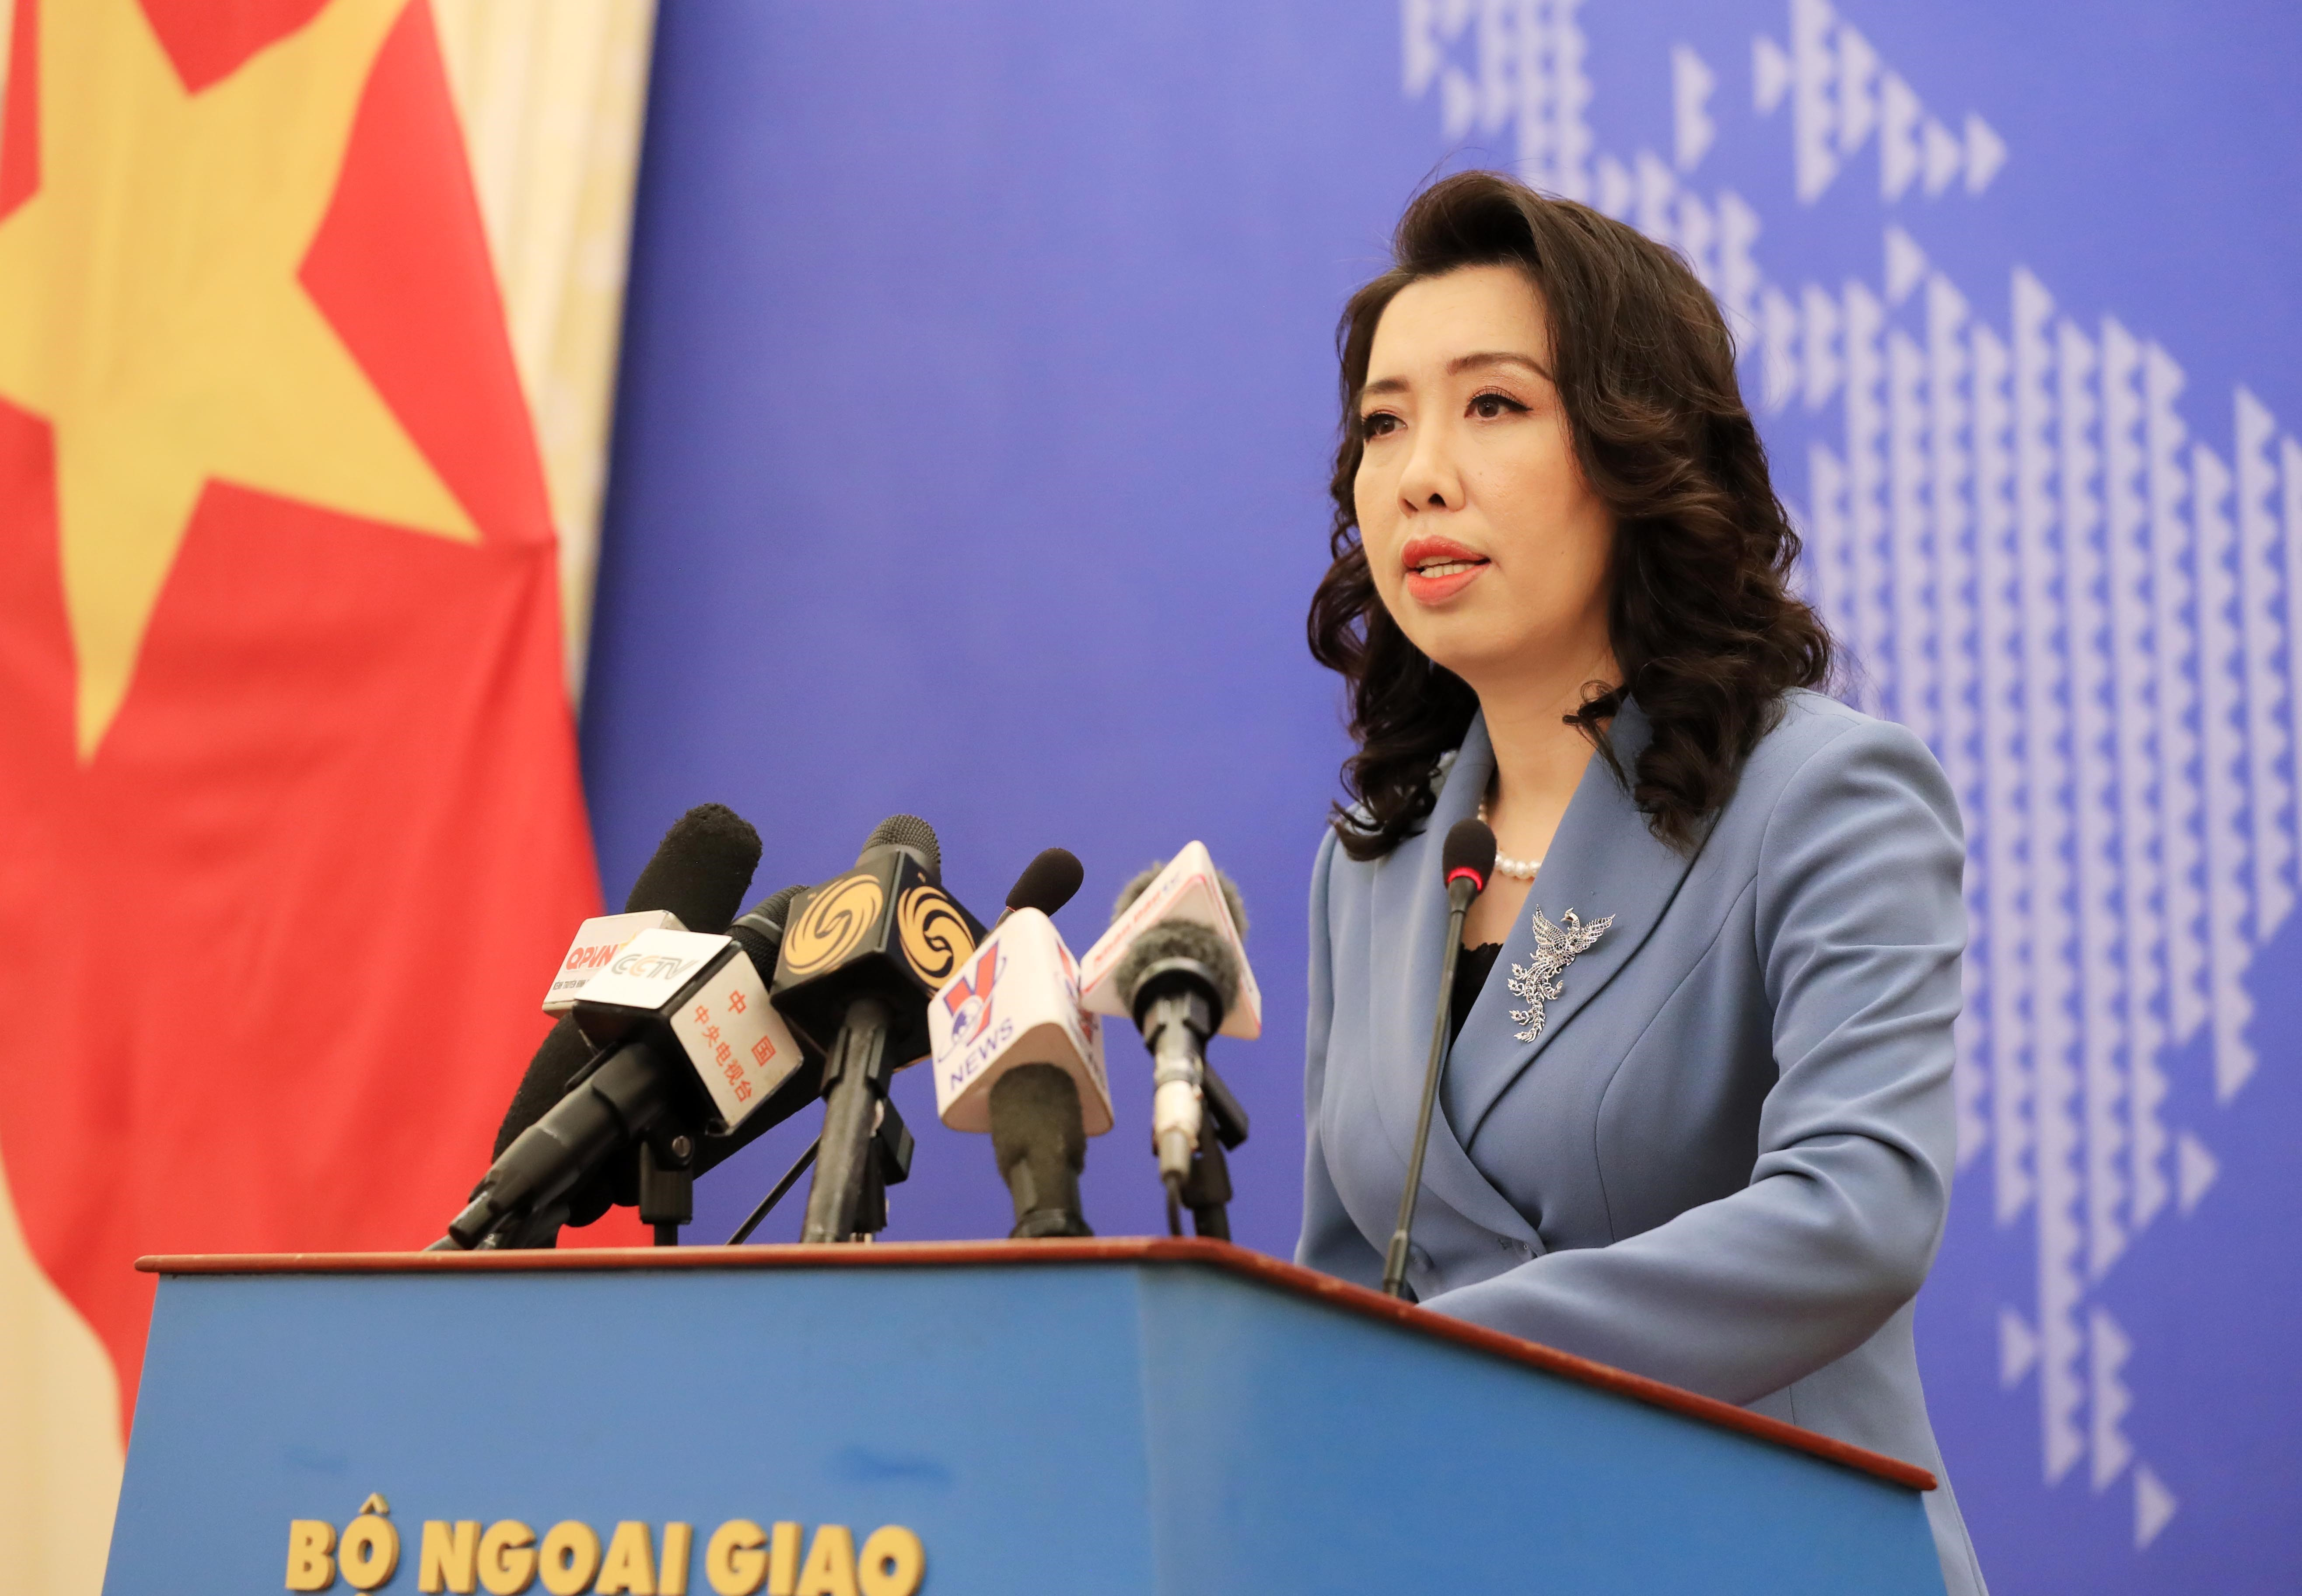 Vietnam vows to strictly punish those sexually harassing foreigners in Hanoi